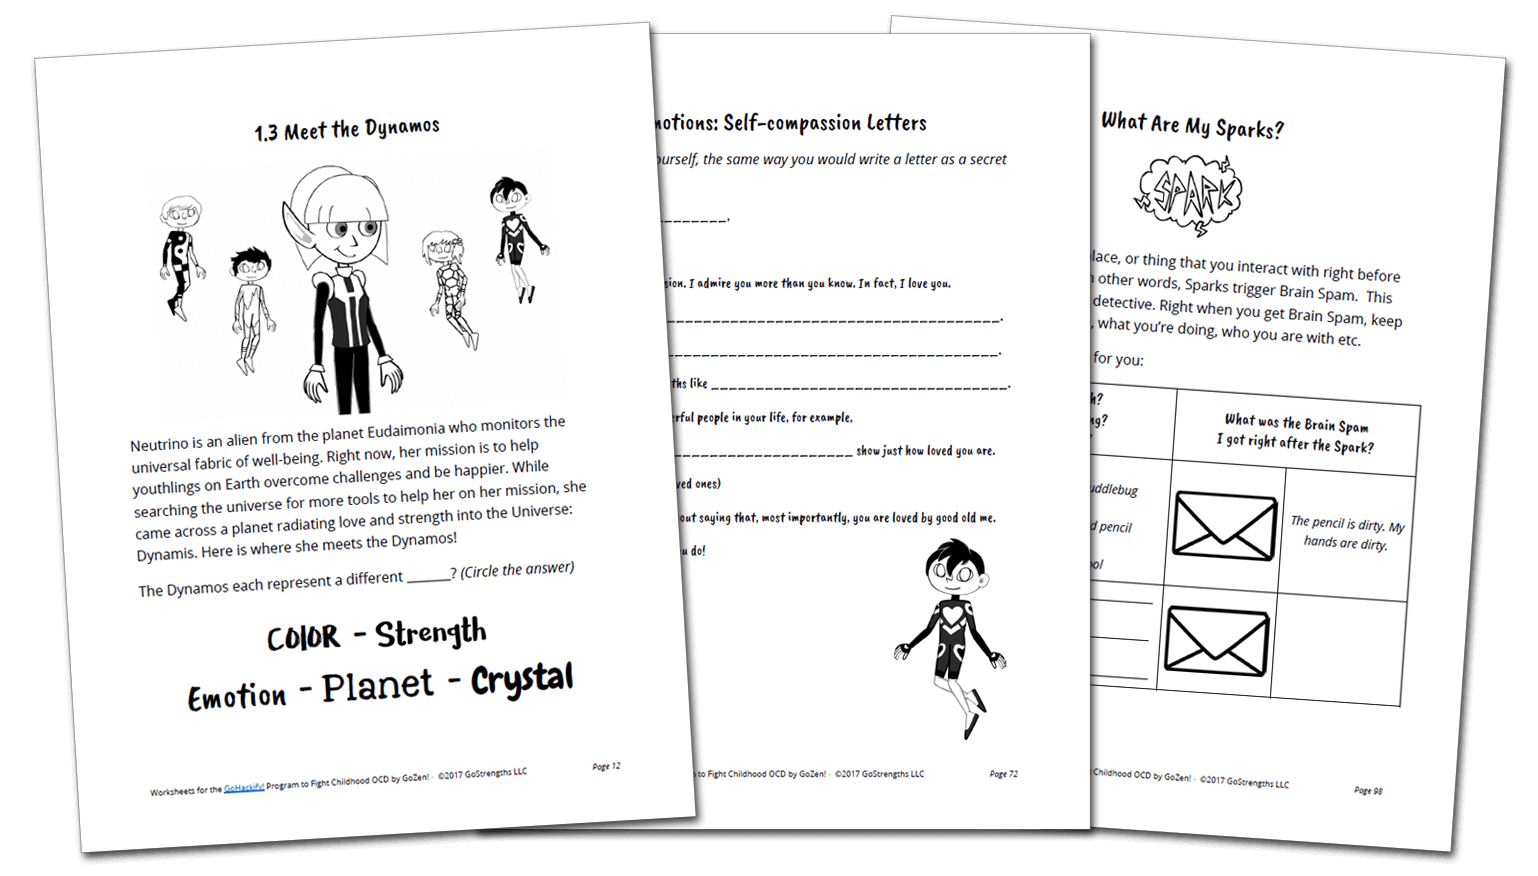 worksheet_preview